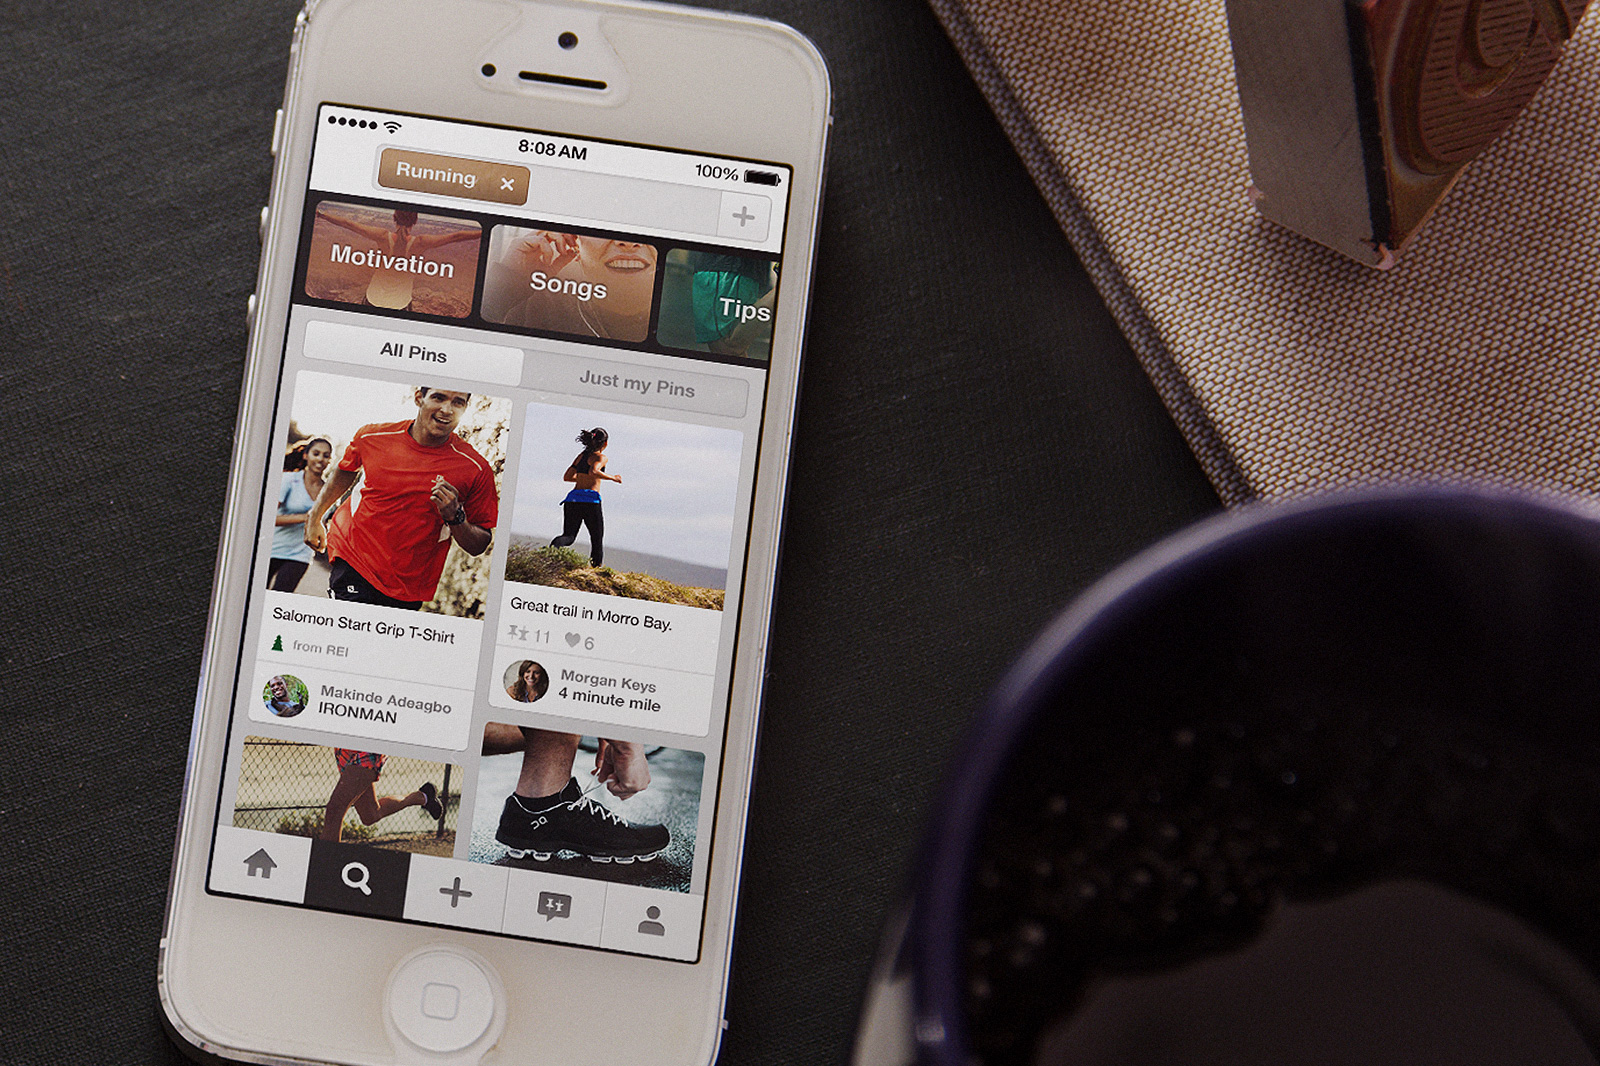 Pinterest's Latest iOS Update Adds A New 'Guided Search' Feature